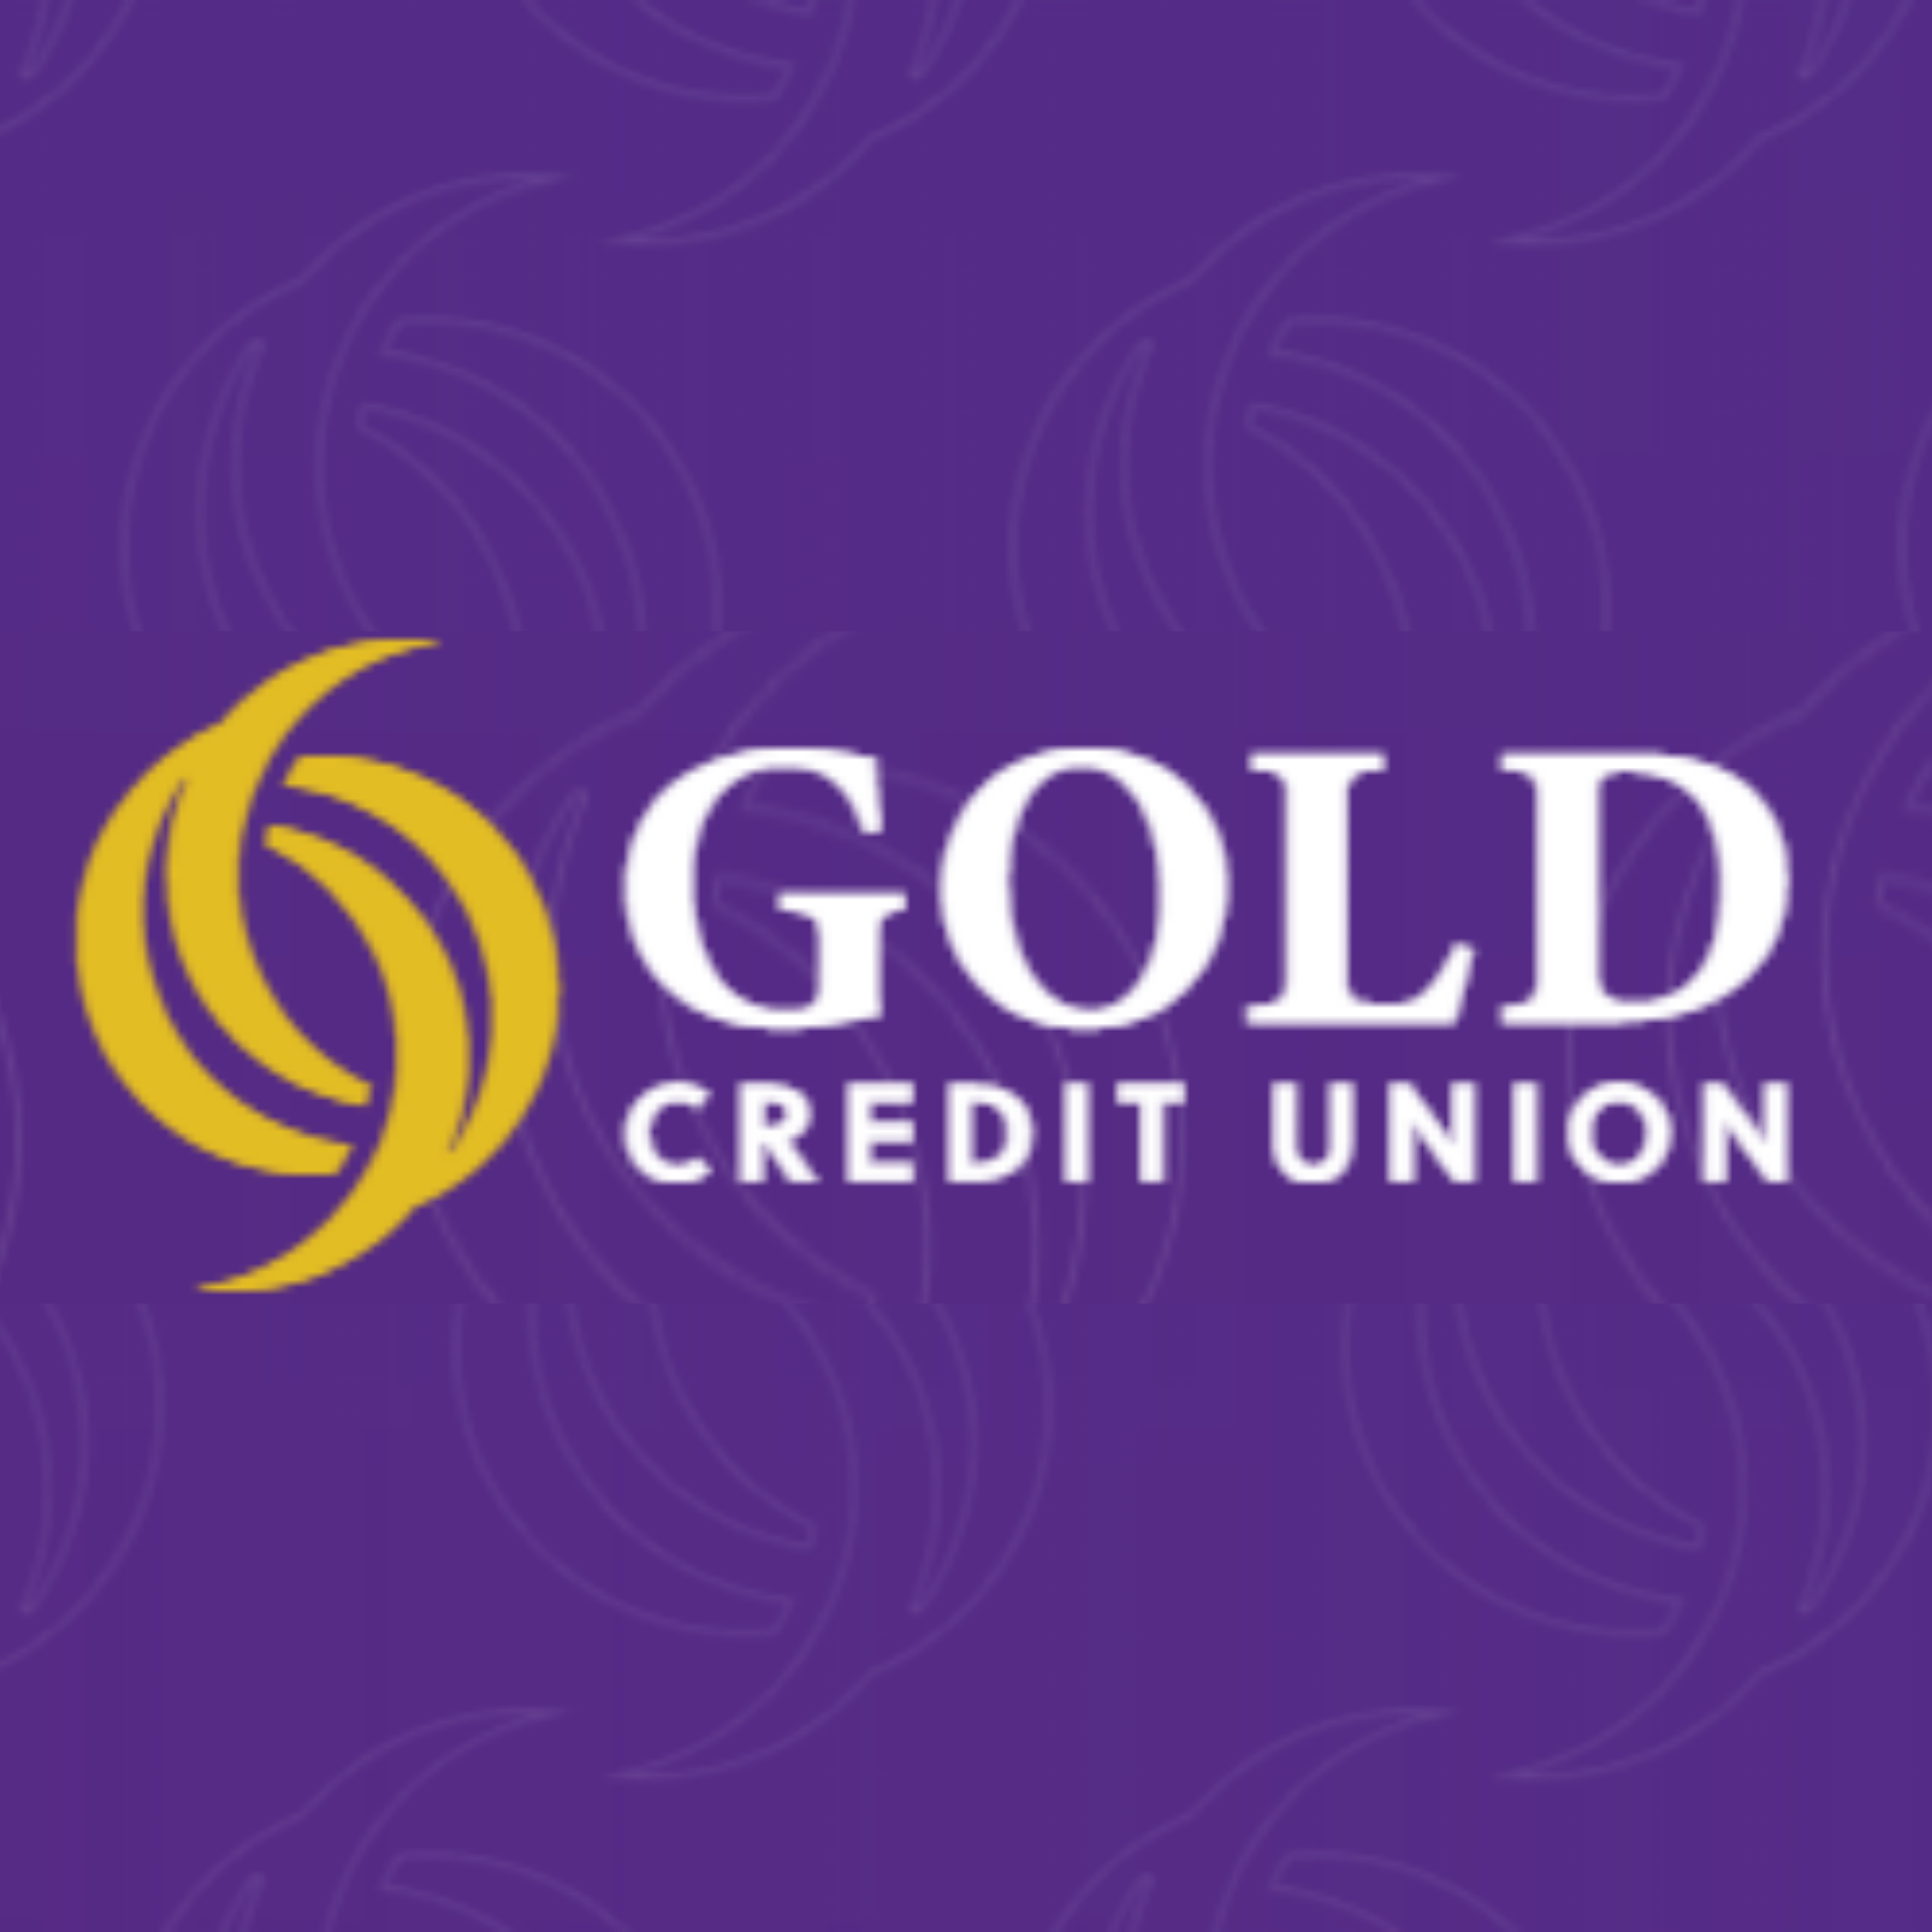 Gold Credit Union